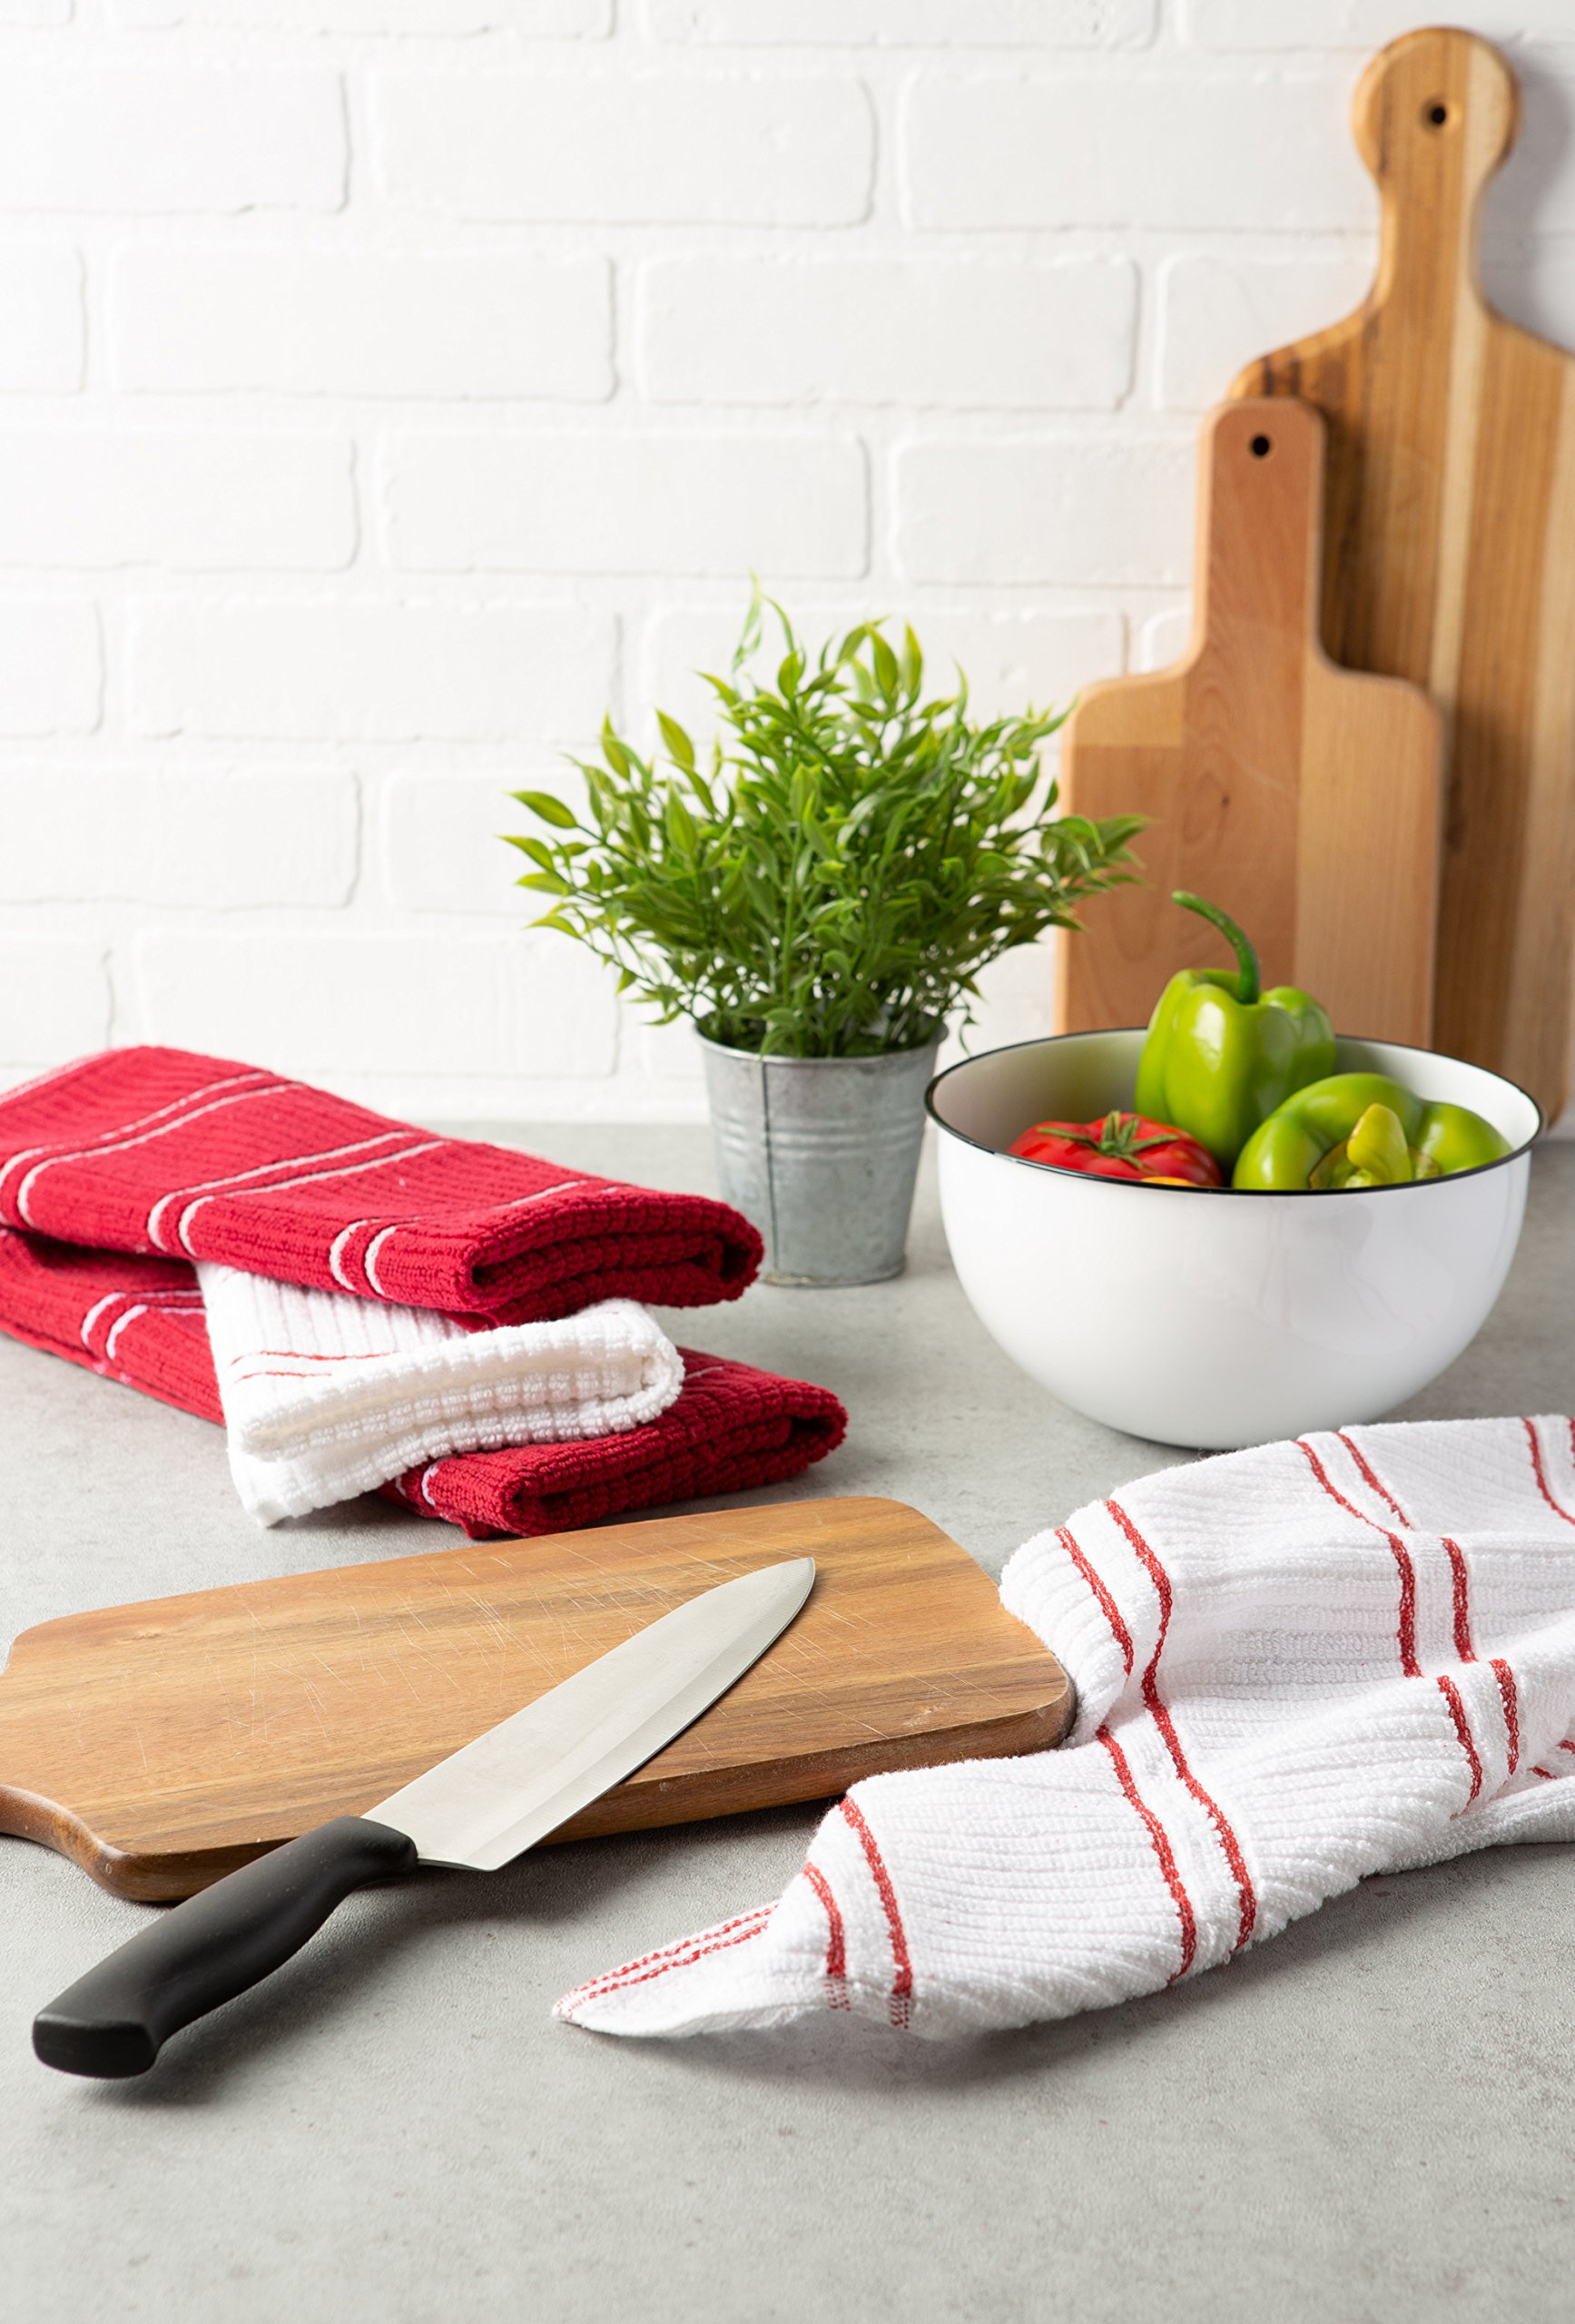 J&M Home Fashions Ribbed Terry Kitchen Dish Towels (16x26 Set of 6 - Assorted Red & White) Absorbent & Durable for Wiping Down Countertops, Dusting, or Drying Dishes by J&M Home Fashions (Image #4)